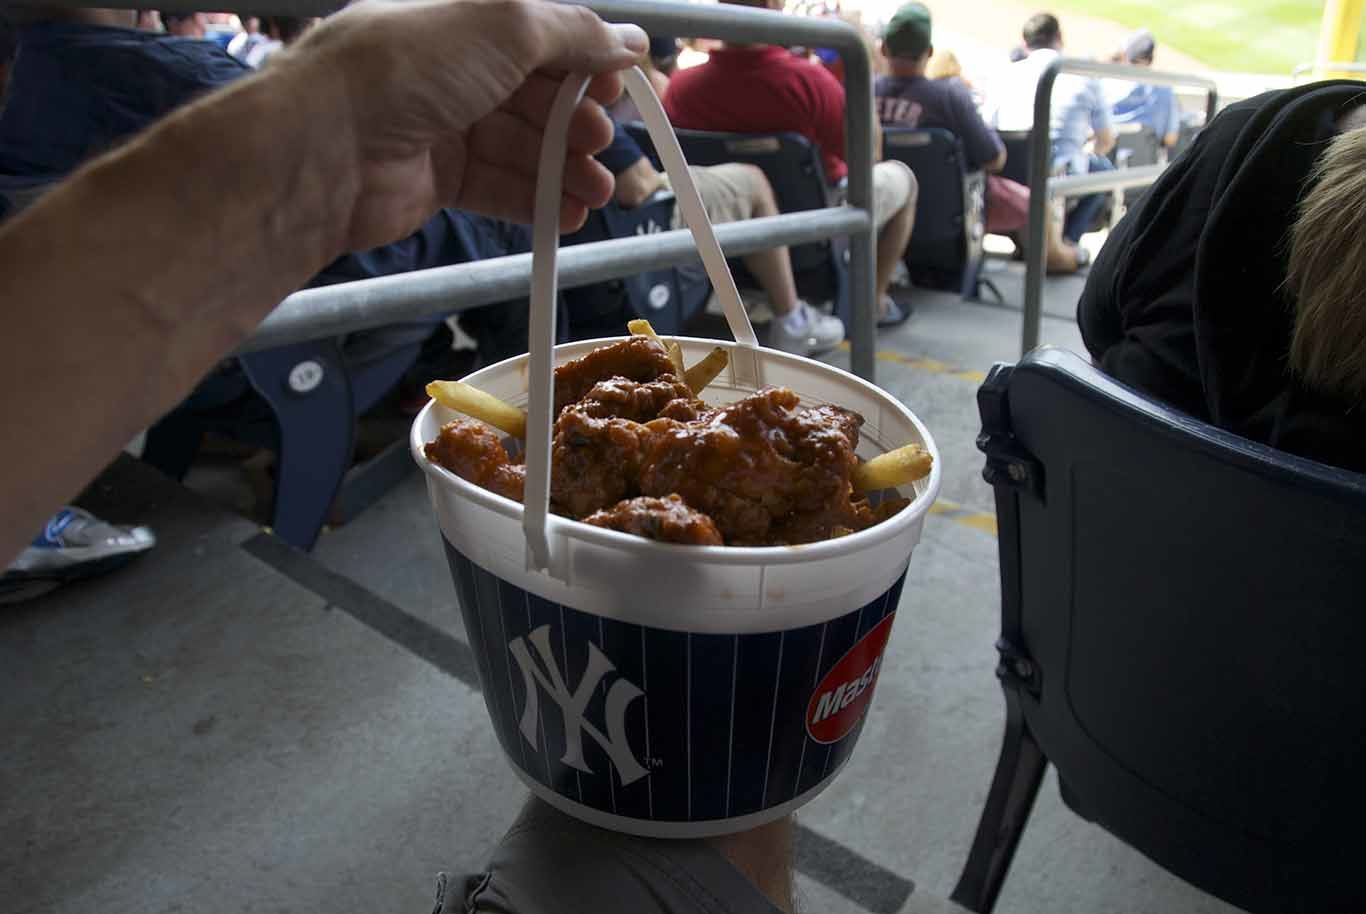 Baseball game is also very much about eating and drinking...